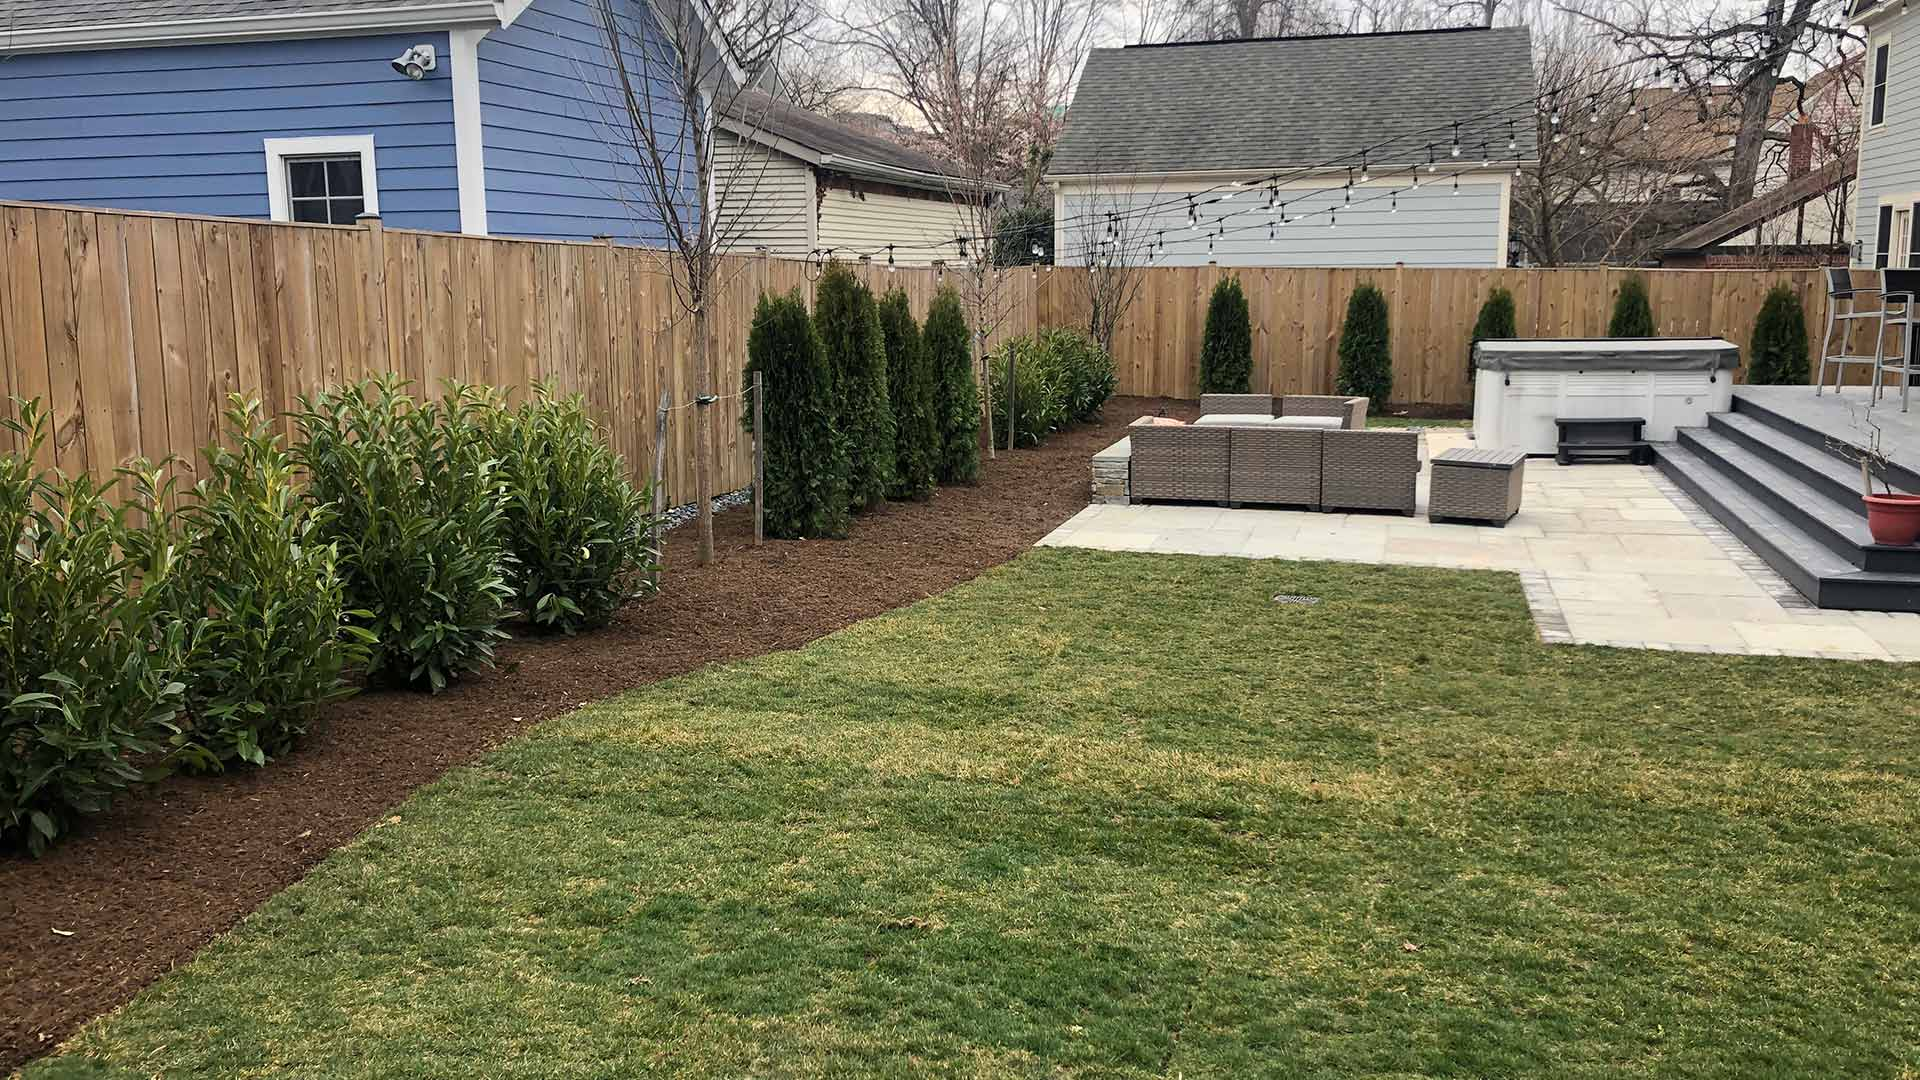 Arlington, Virginia home backyard with landscape renovation and plantings.